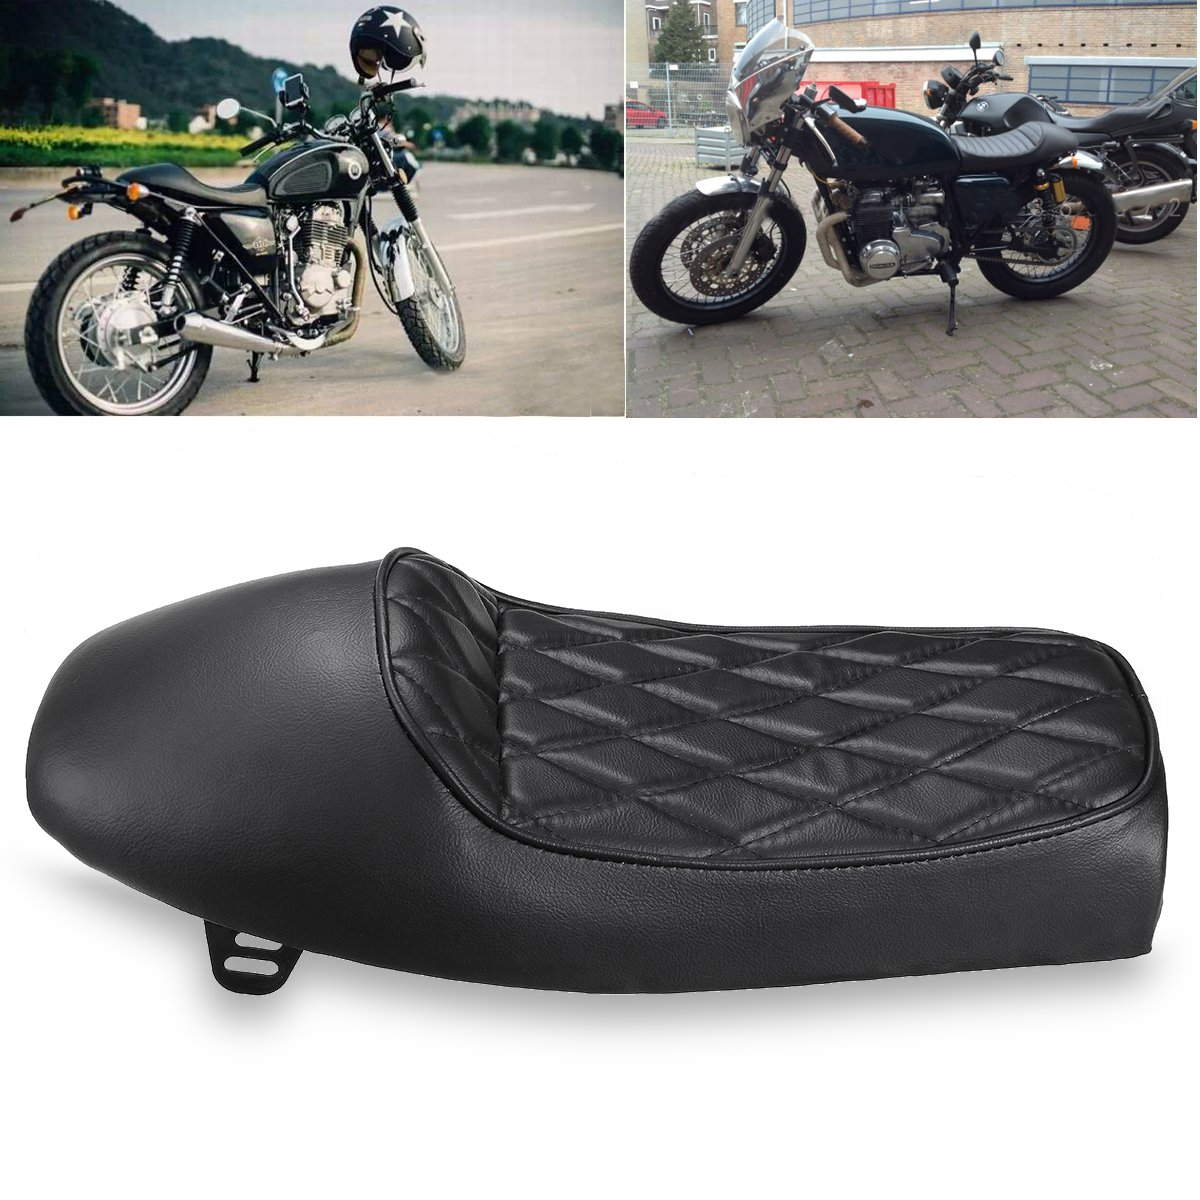 x racer chair 40 4 vintage hump saddle cafe seat motorcycle custom